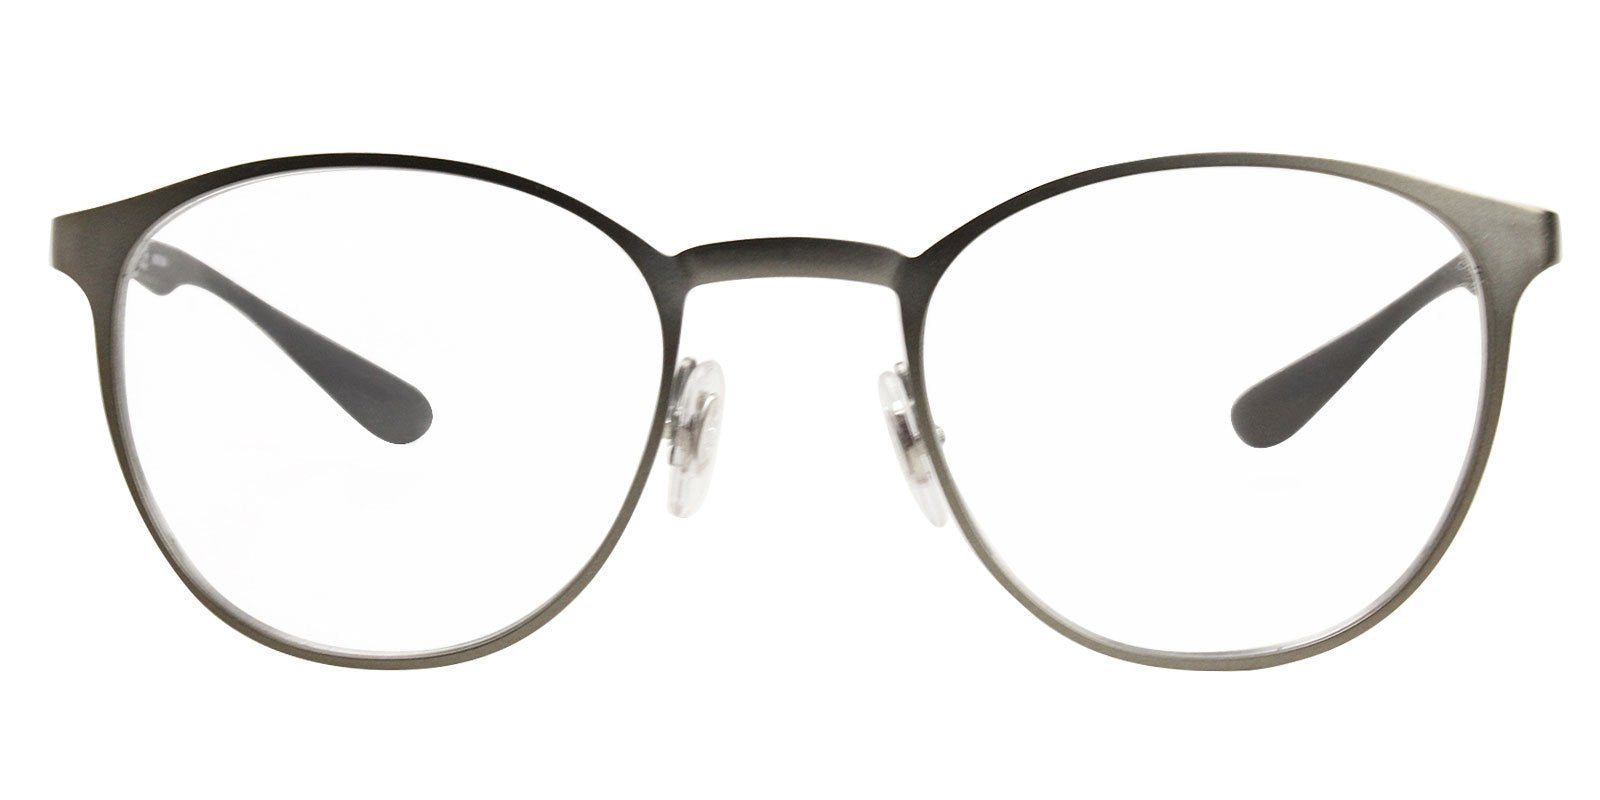 Ray Ban Rx - RX6355 Gray Oval Unisex Eyeglasses - 47mm-Eyeglasses-Designer Eyes